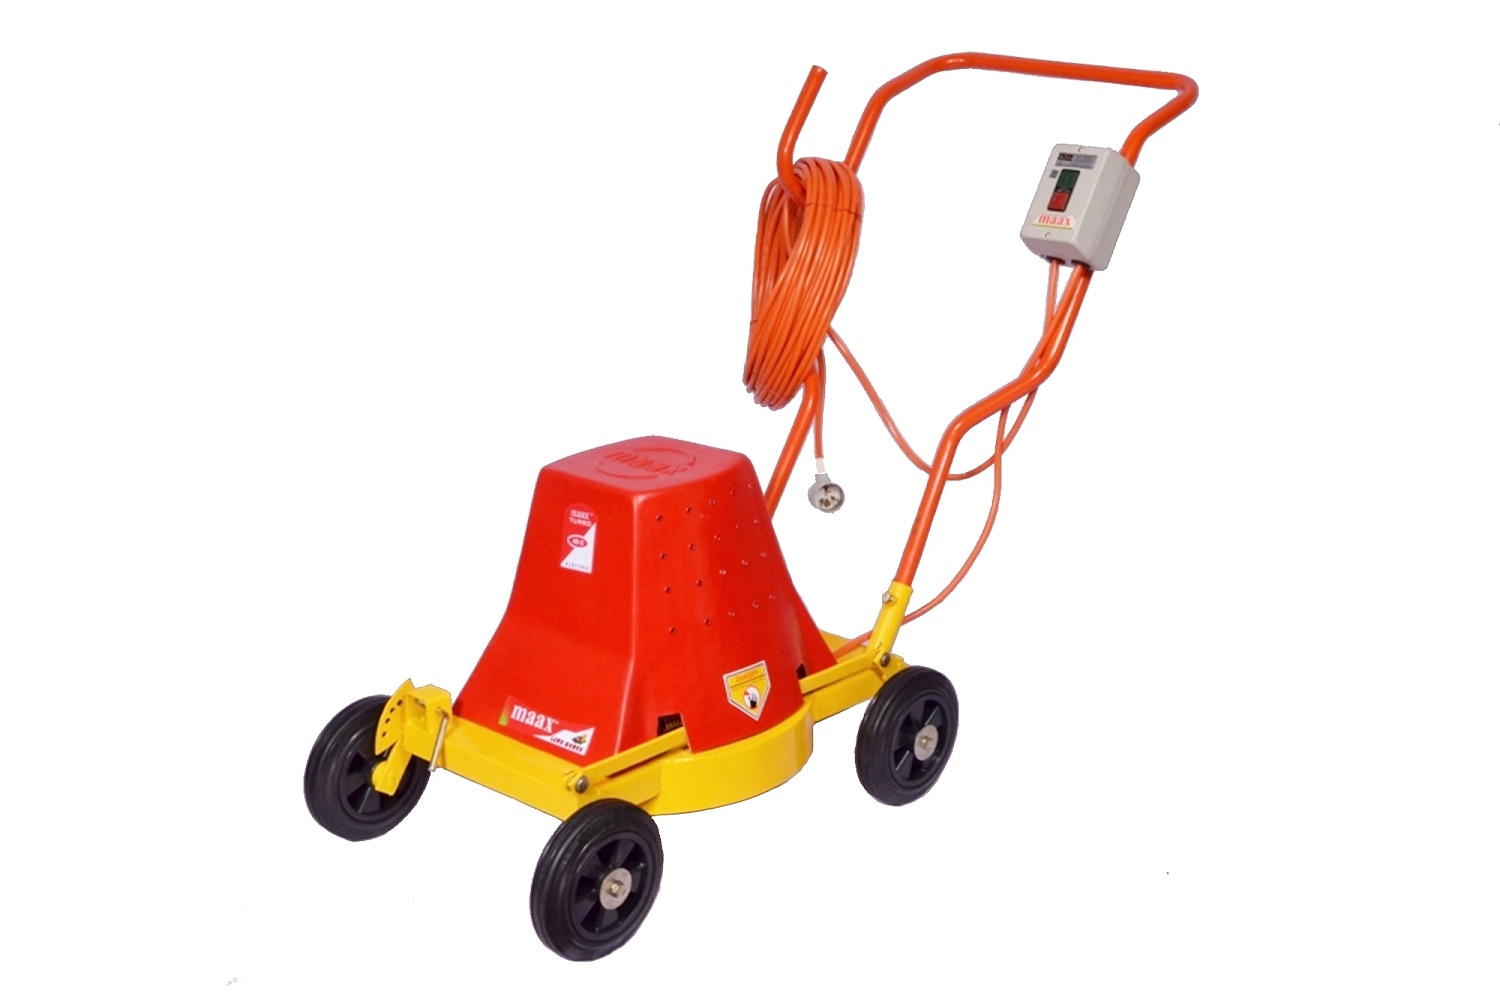 ELECTRIC LAWN MOWER - CLASSIC 45C